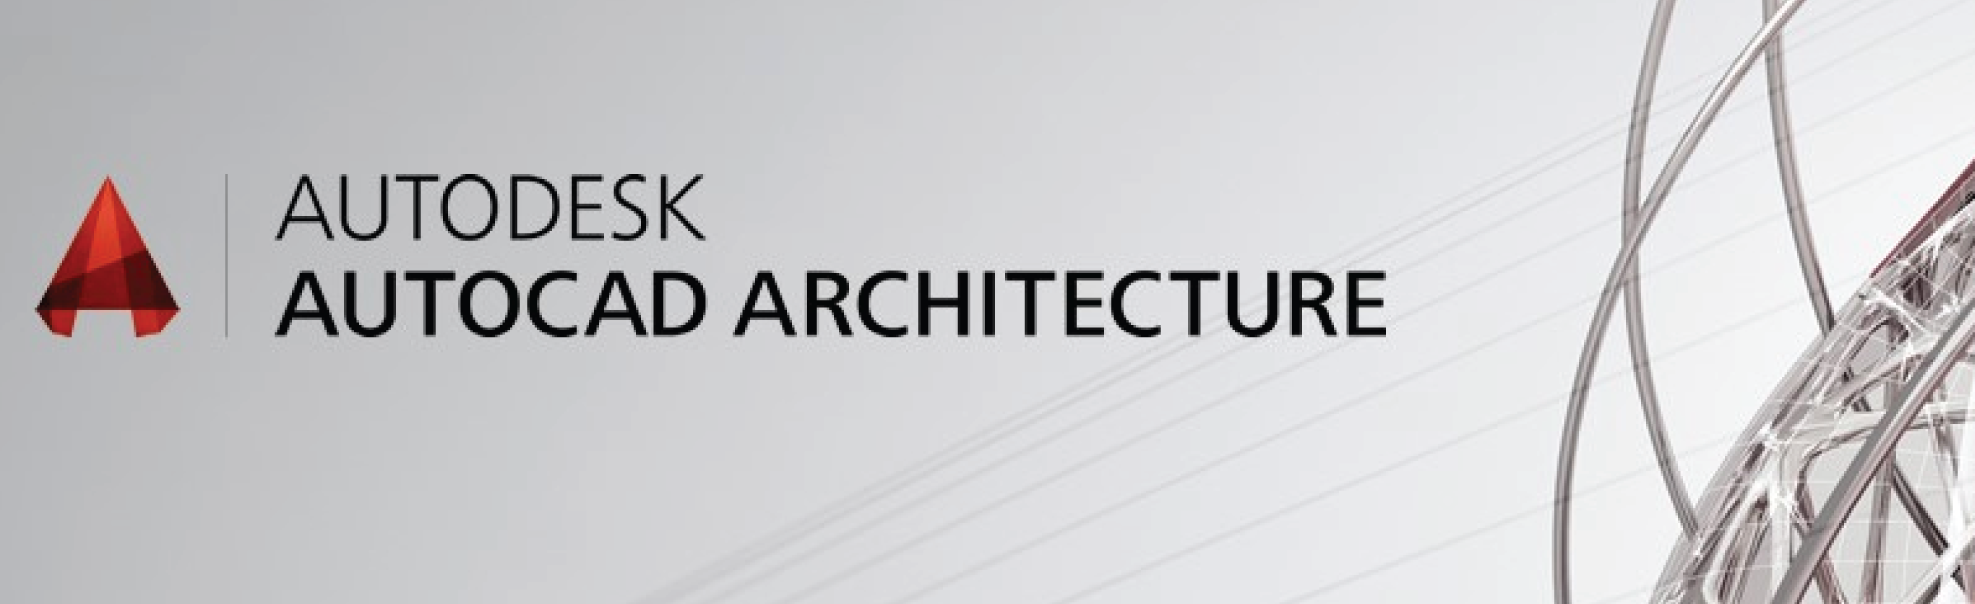 AutoCAD Architecture Video